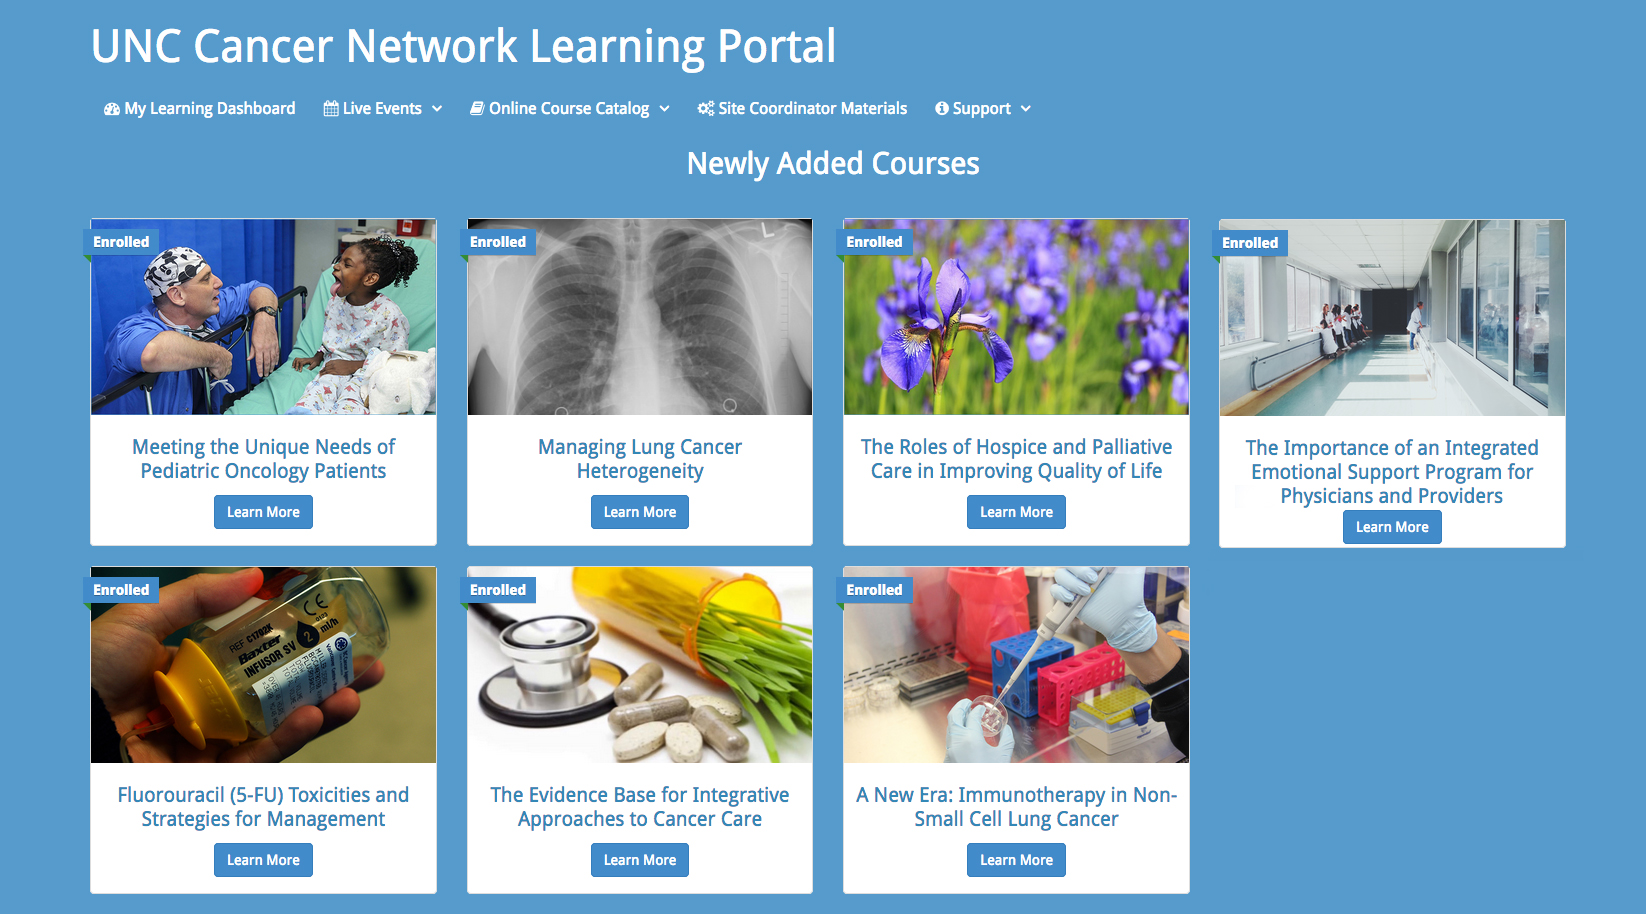 Courses in the Learning Portal